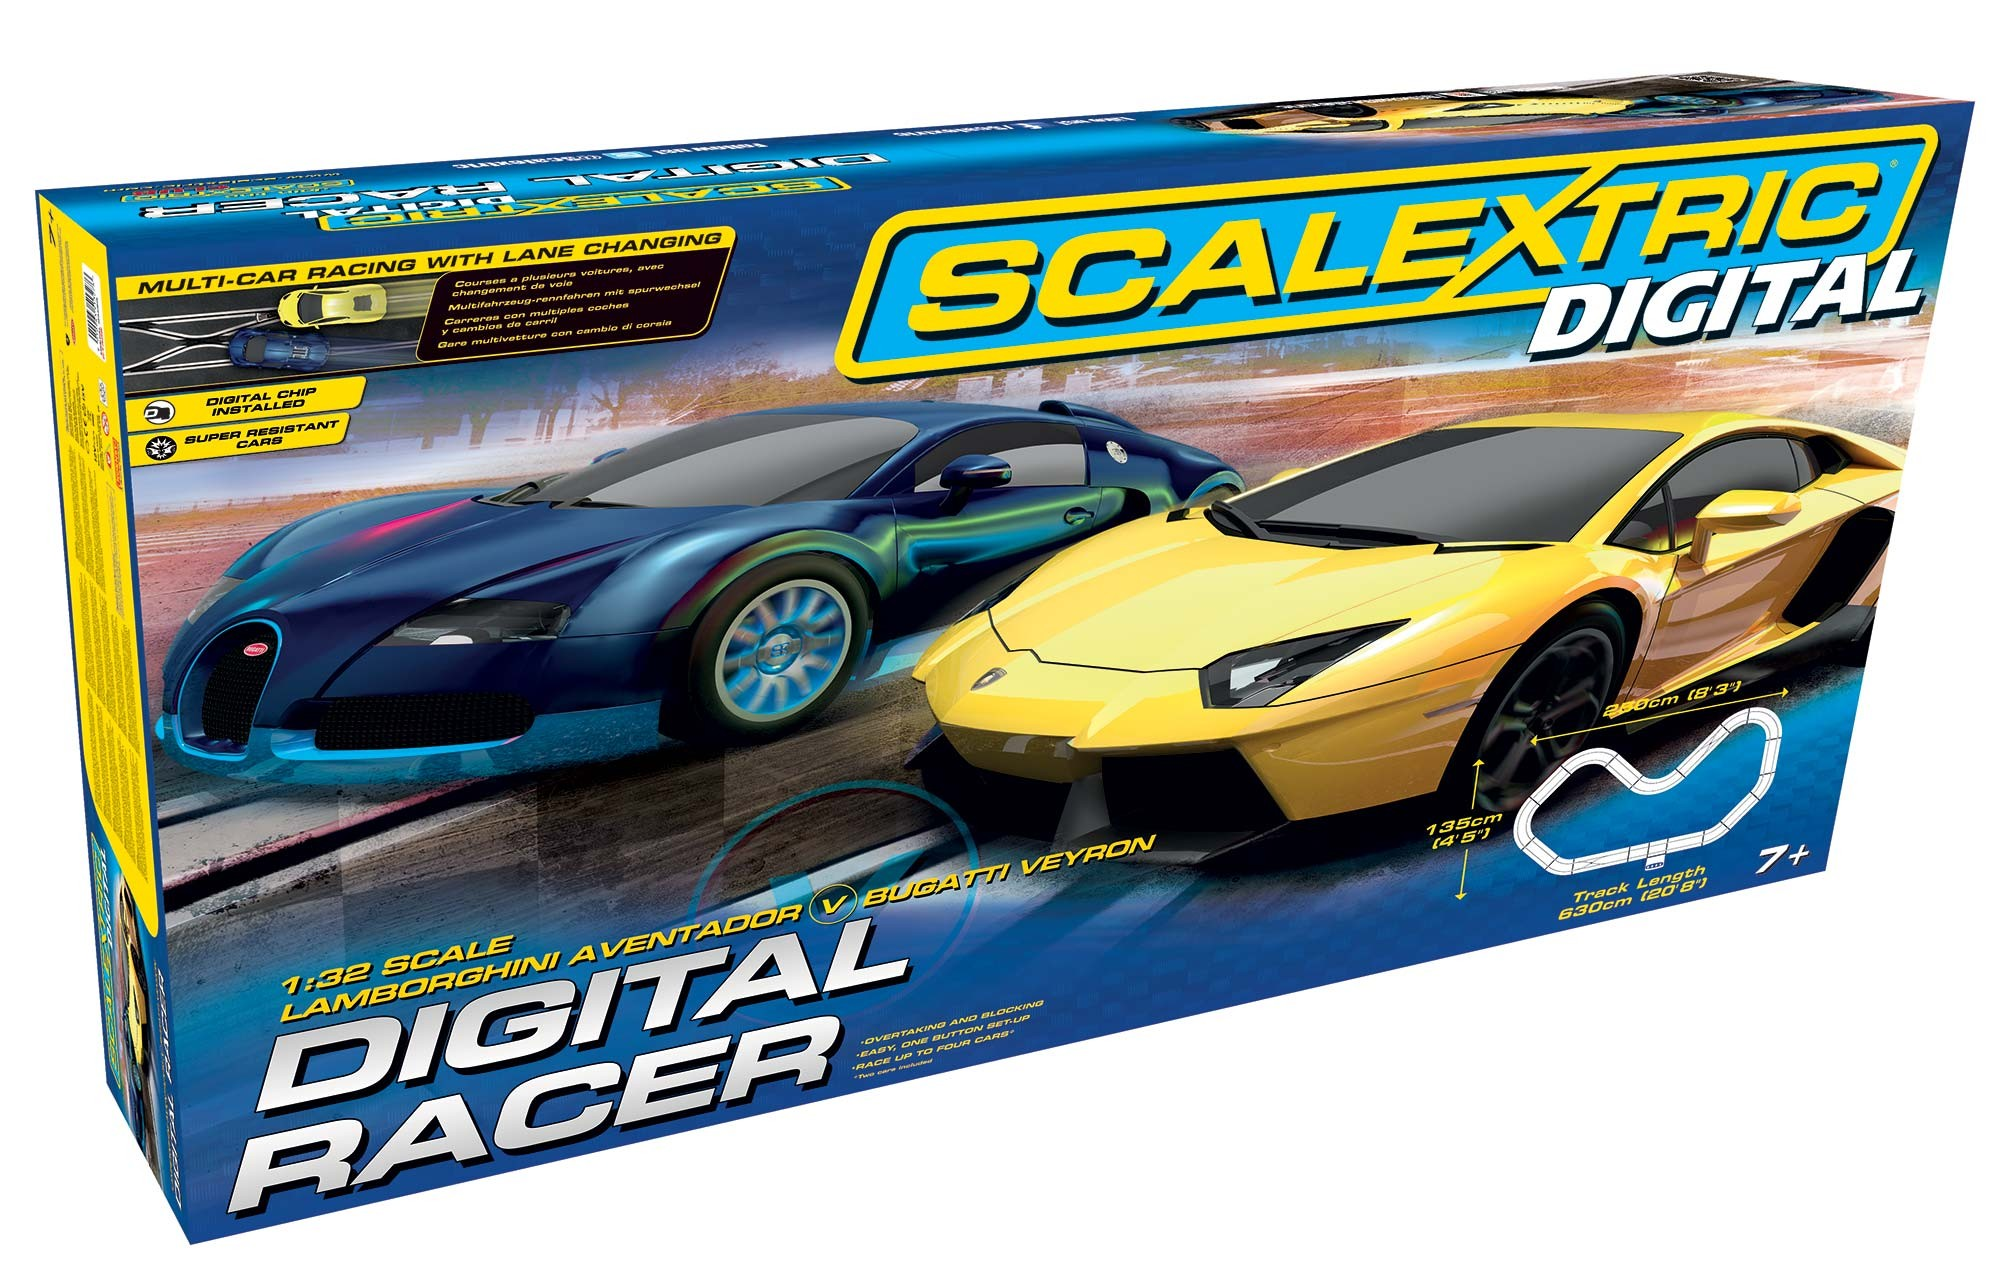 D Set Digital Racer - SCA C1327